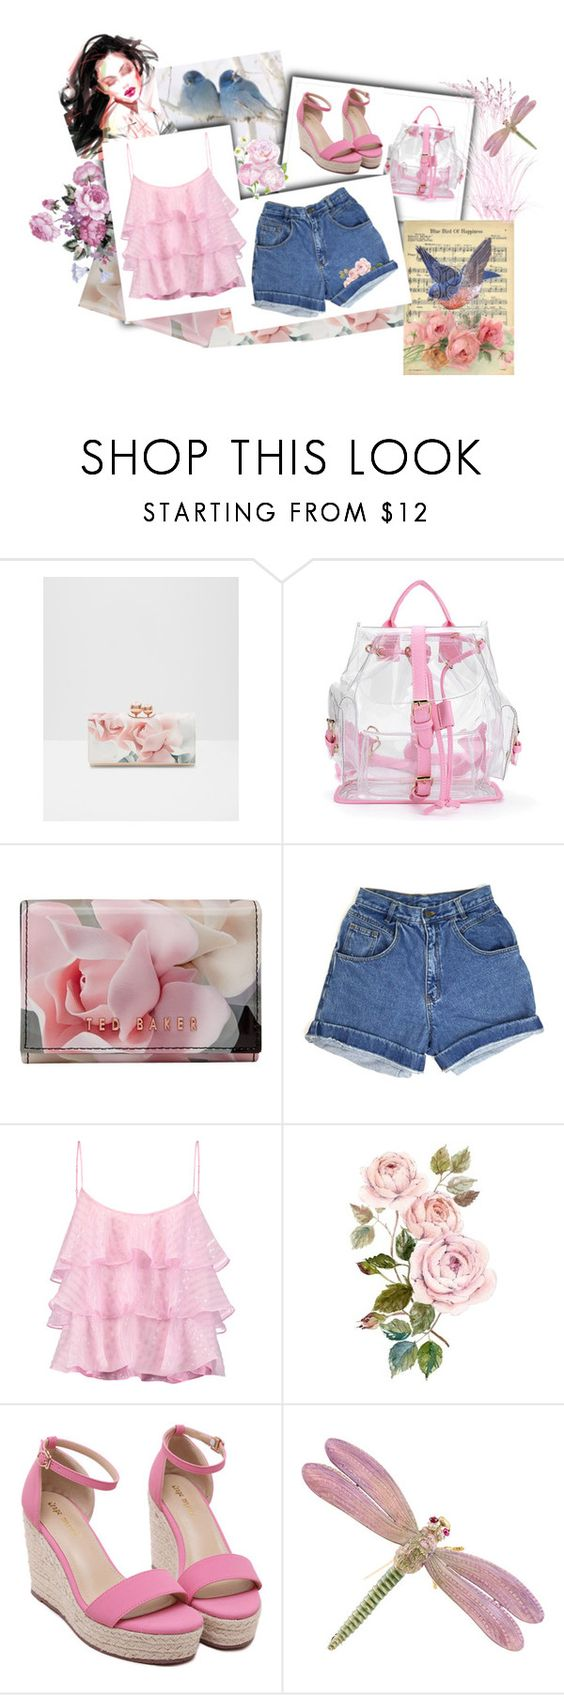 """Love my denim shorts!"" by leaff88 ❤ liked on Polyvore featuring Ted Baker, Pierre Balmain and Tiffany & Co."